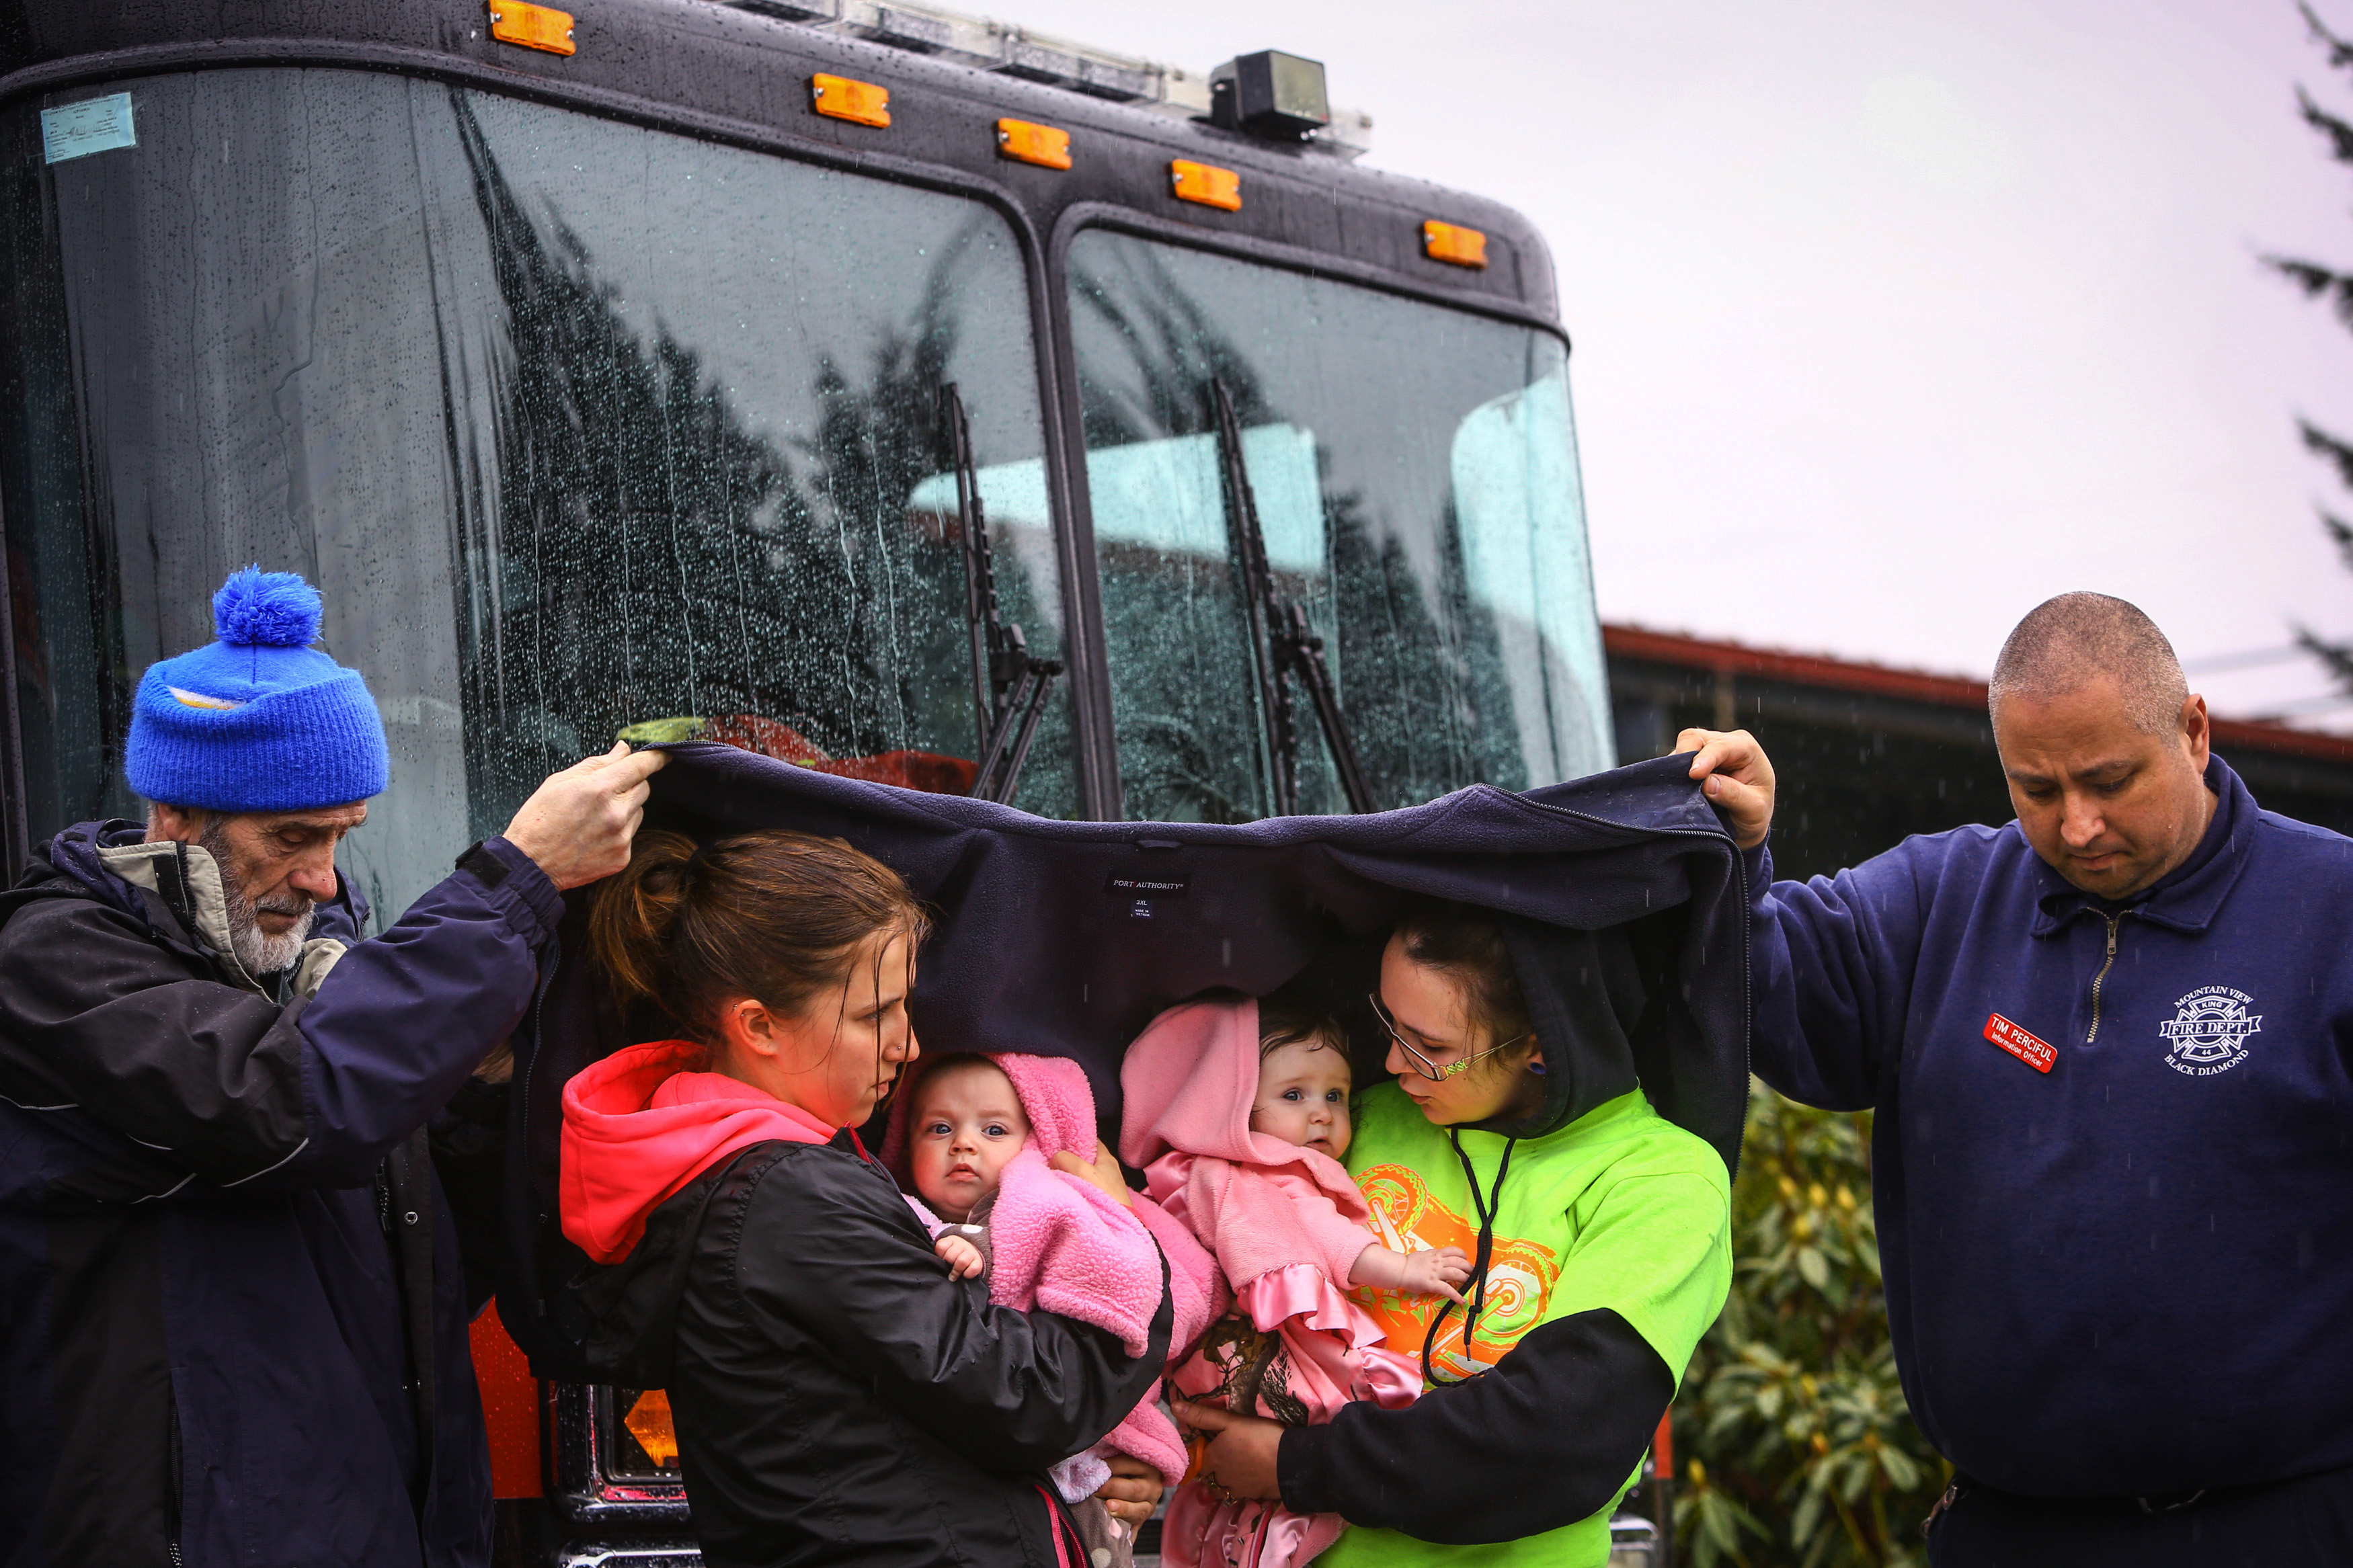 Volunteer Ralph Jones, left, and Tim Perciful of the Mountainview, Black Diamond Fire Department, help keep Klarissa Calviste and her daughter Kielie Braaten, left, and Brooke Odenius and her daughter Bexli dry as they observe a state-wide moment of silence for victims of the Oso mudslide at the Darrington Fire Dept., March 29, 2014.